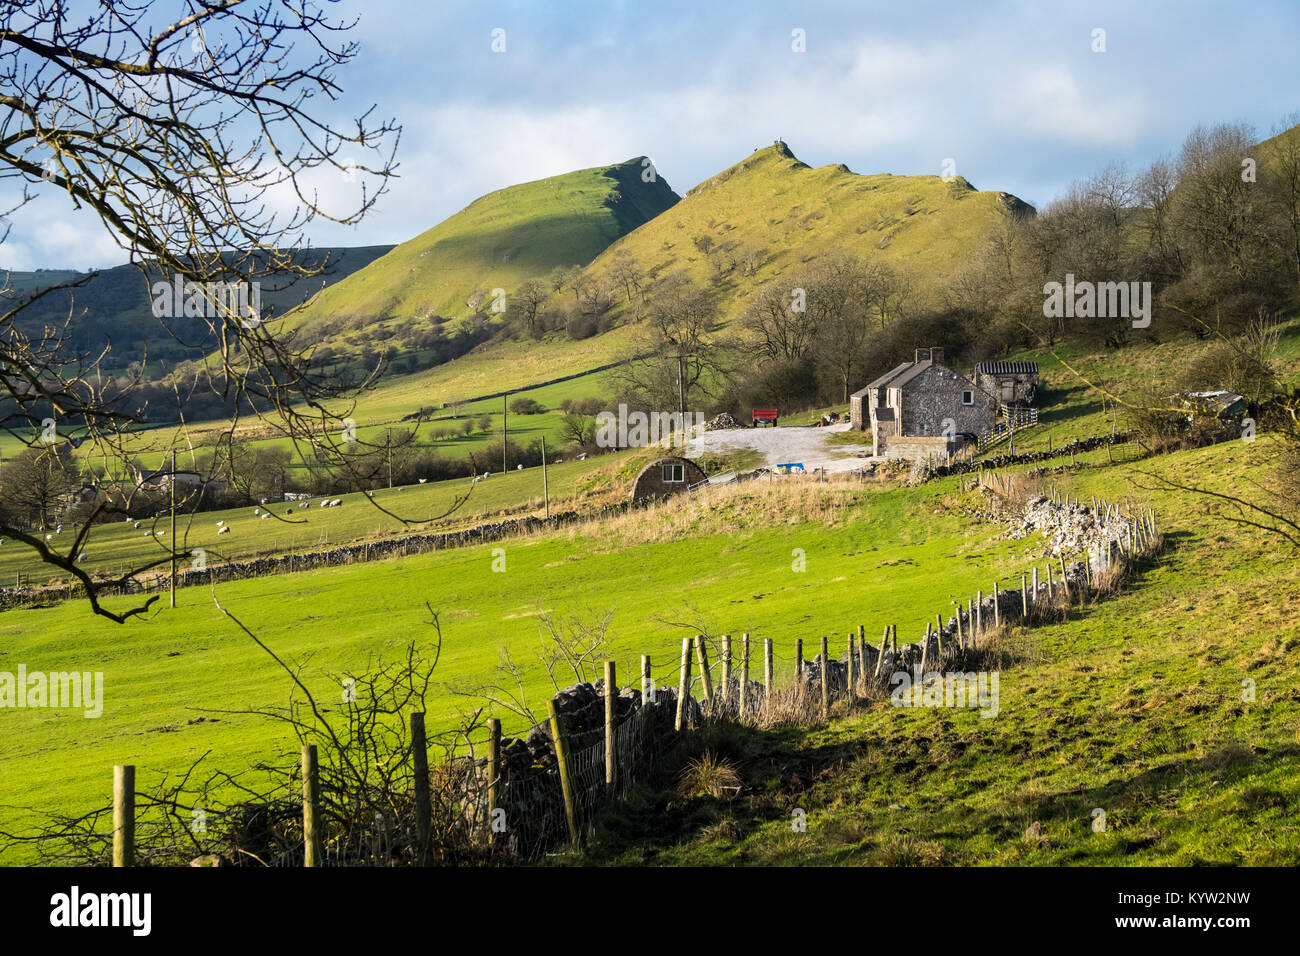 Chrome Hill and Parkhouse Hill in the Upper Dove Valley in the Peak District National Park - Stock Image